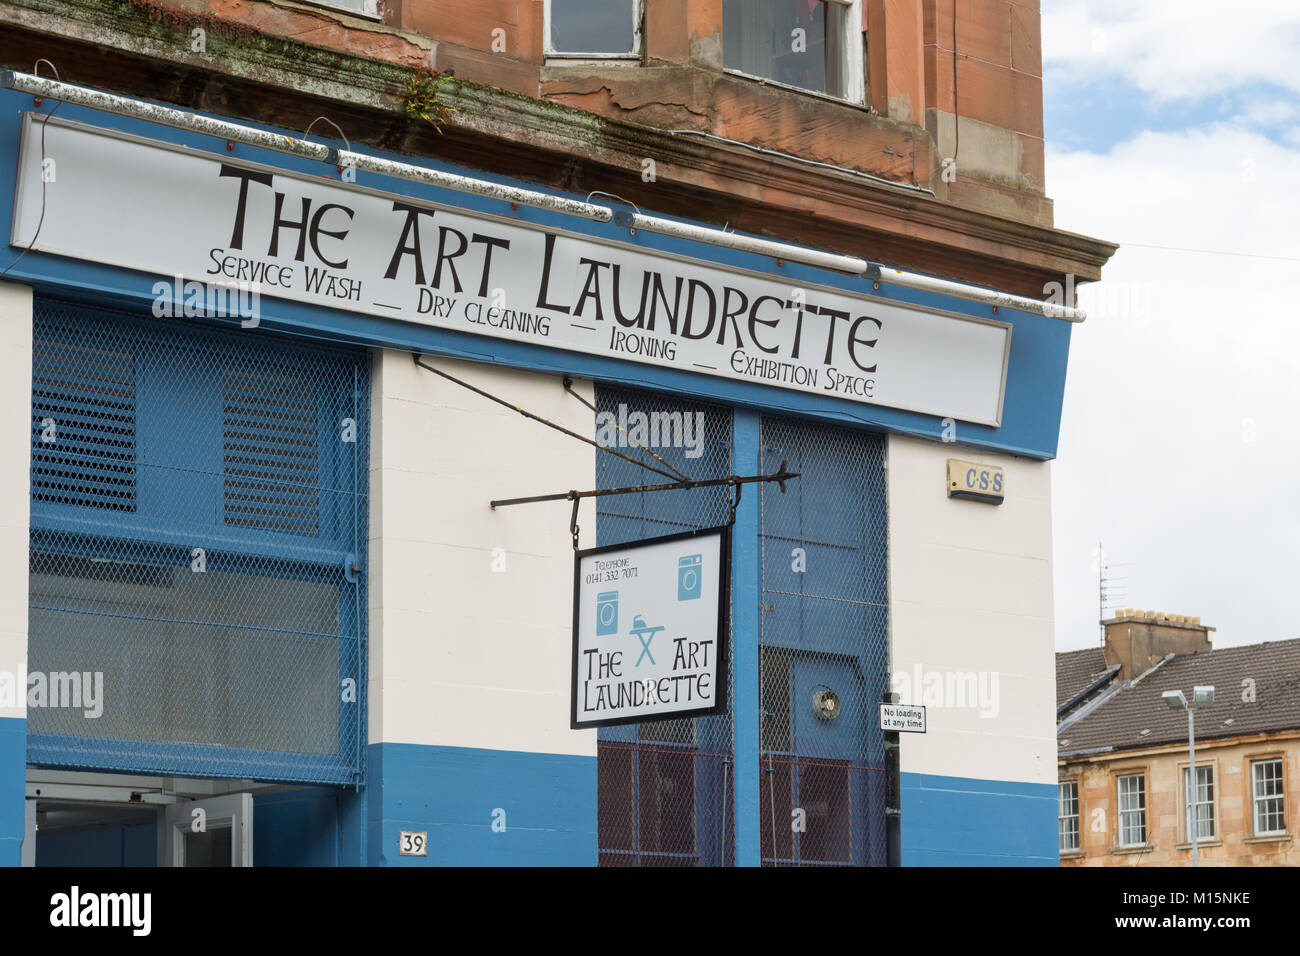 The Art Laundrette and exhibition space, Garnethill, Glasgow, Scotland, UK - Stock Image